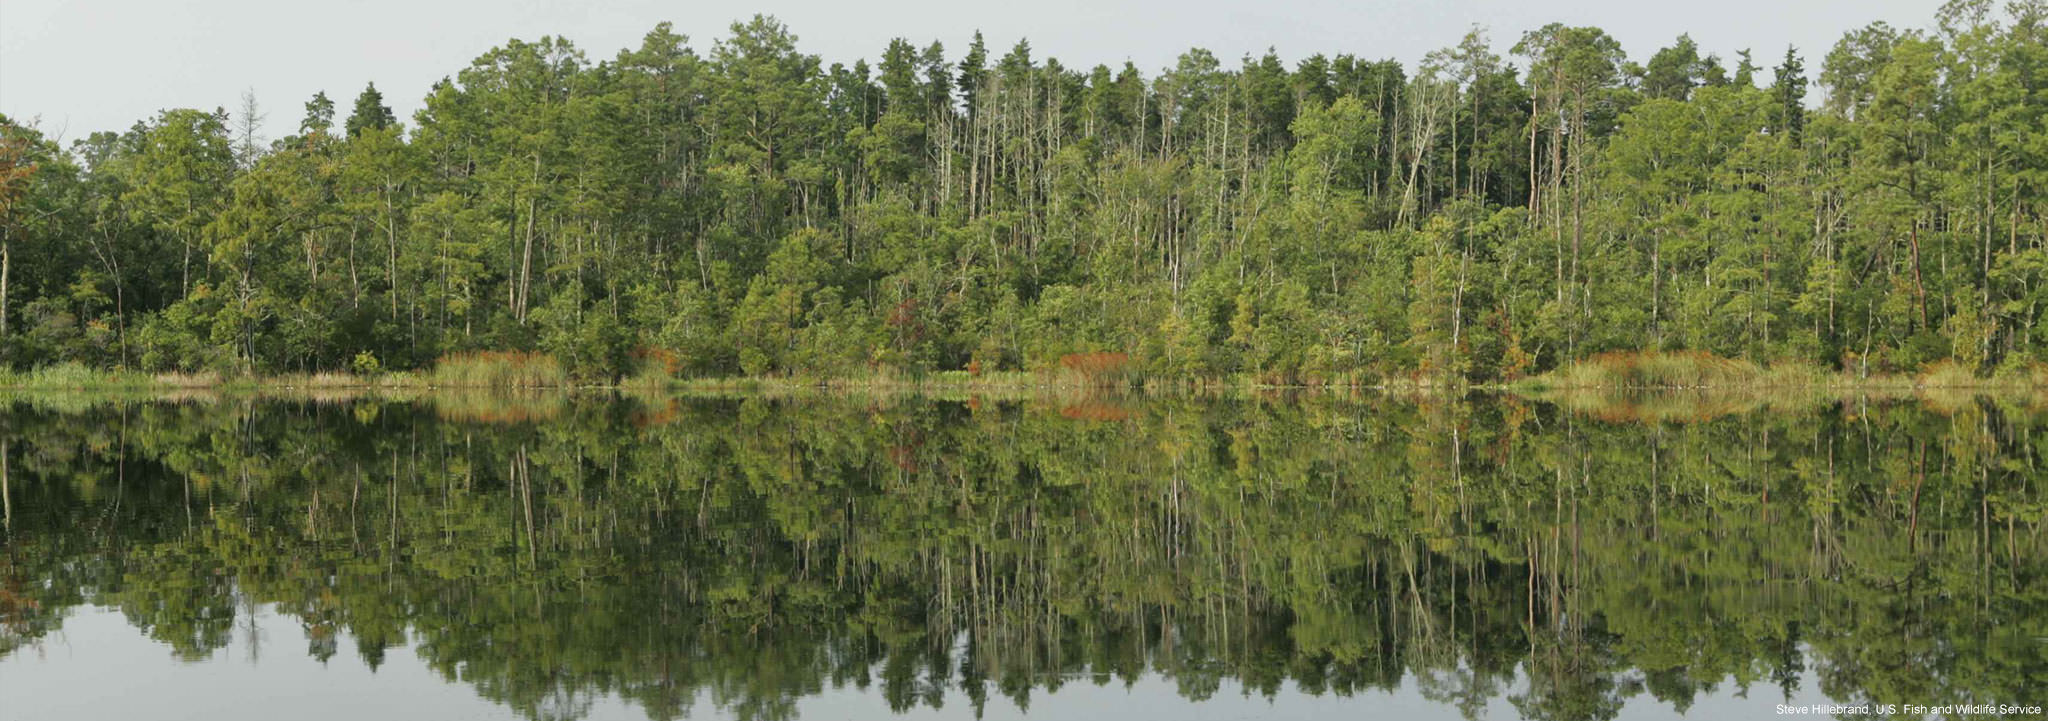 A pocosin pine forest lines the shore of a lake. Image credit: Steve Hillebrand, U.S. Fish and Wildlife Service